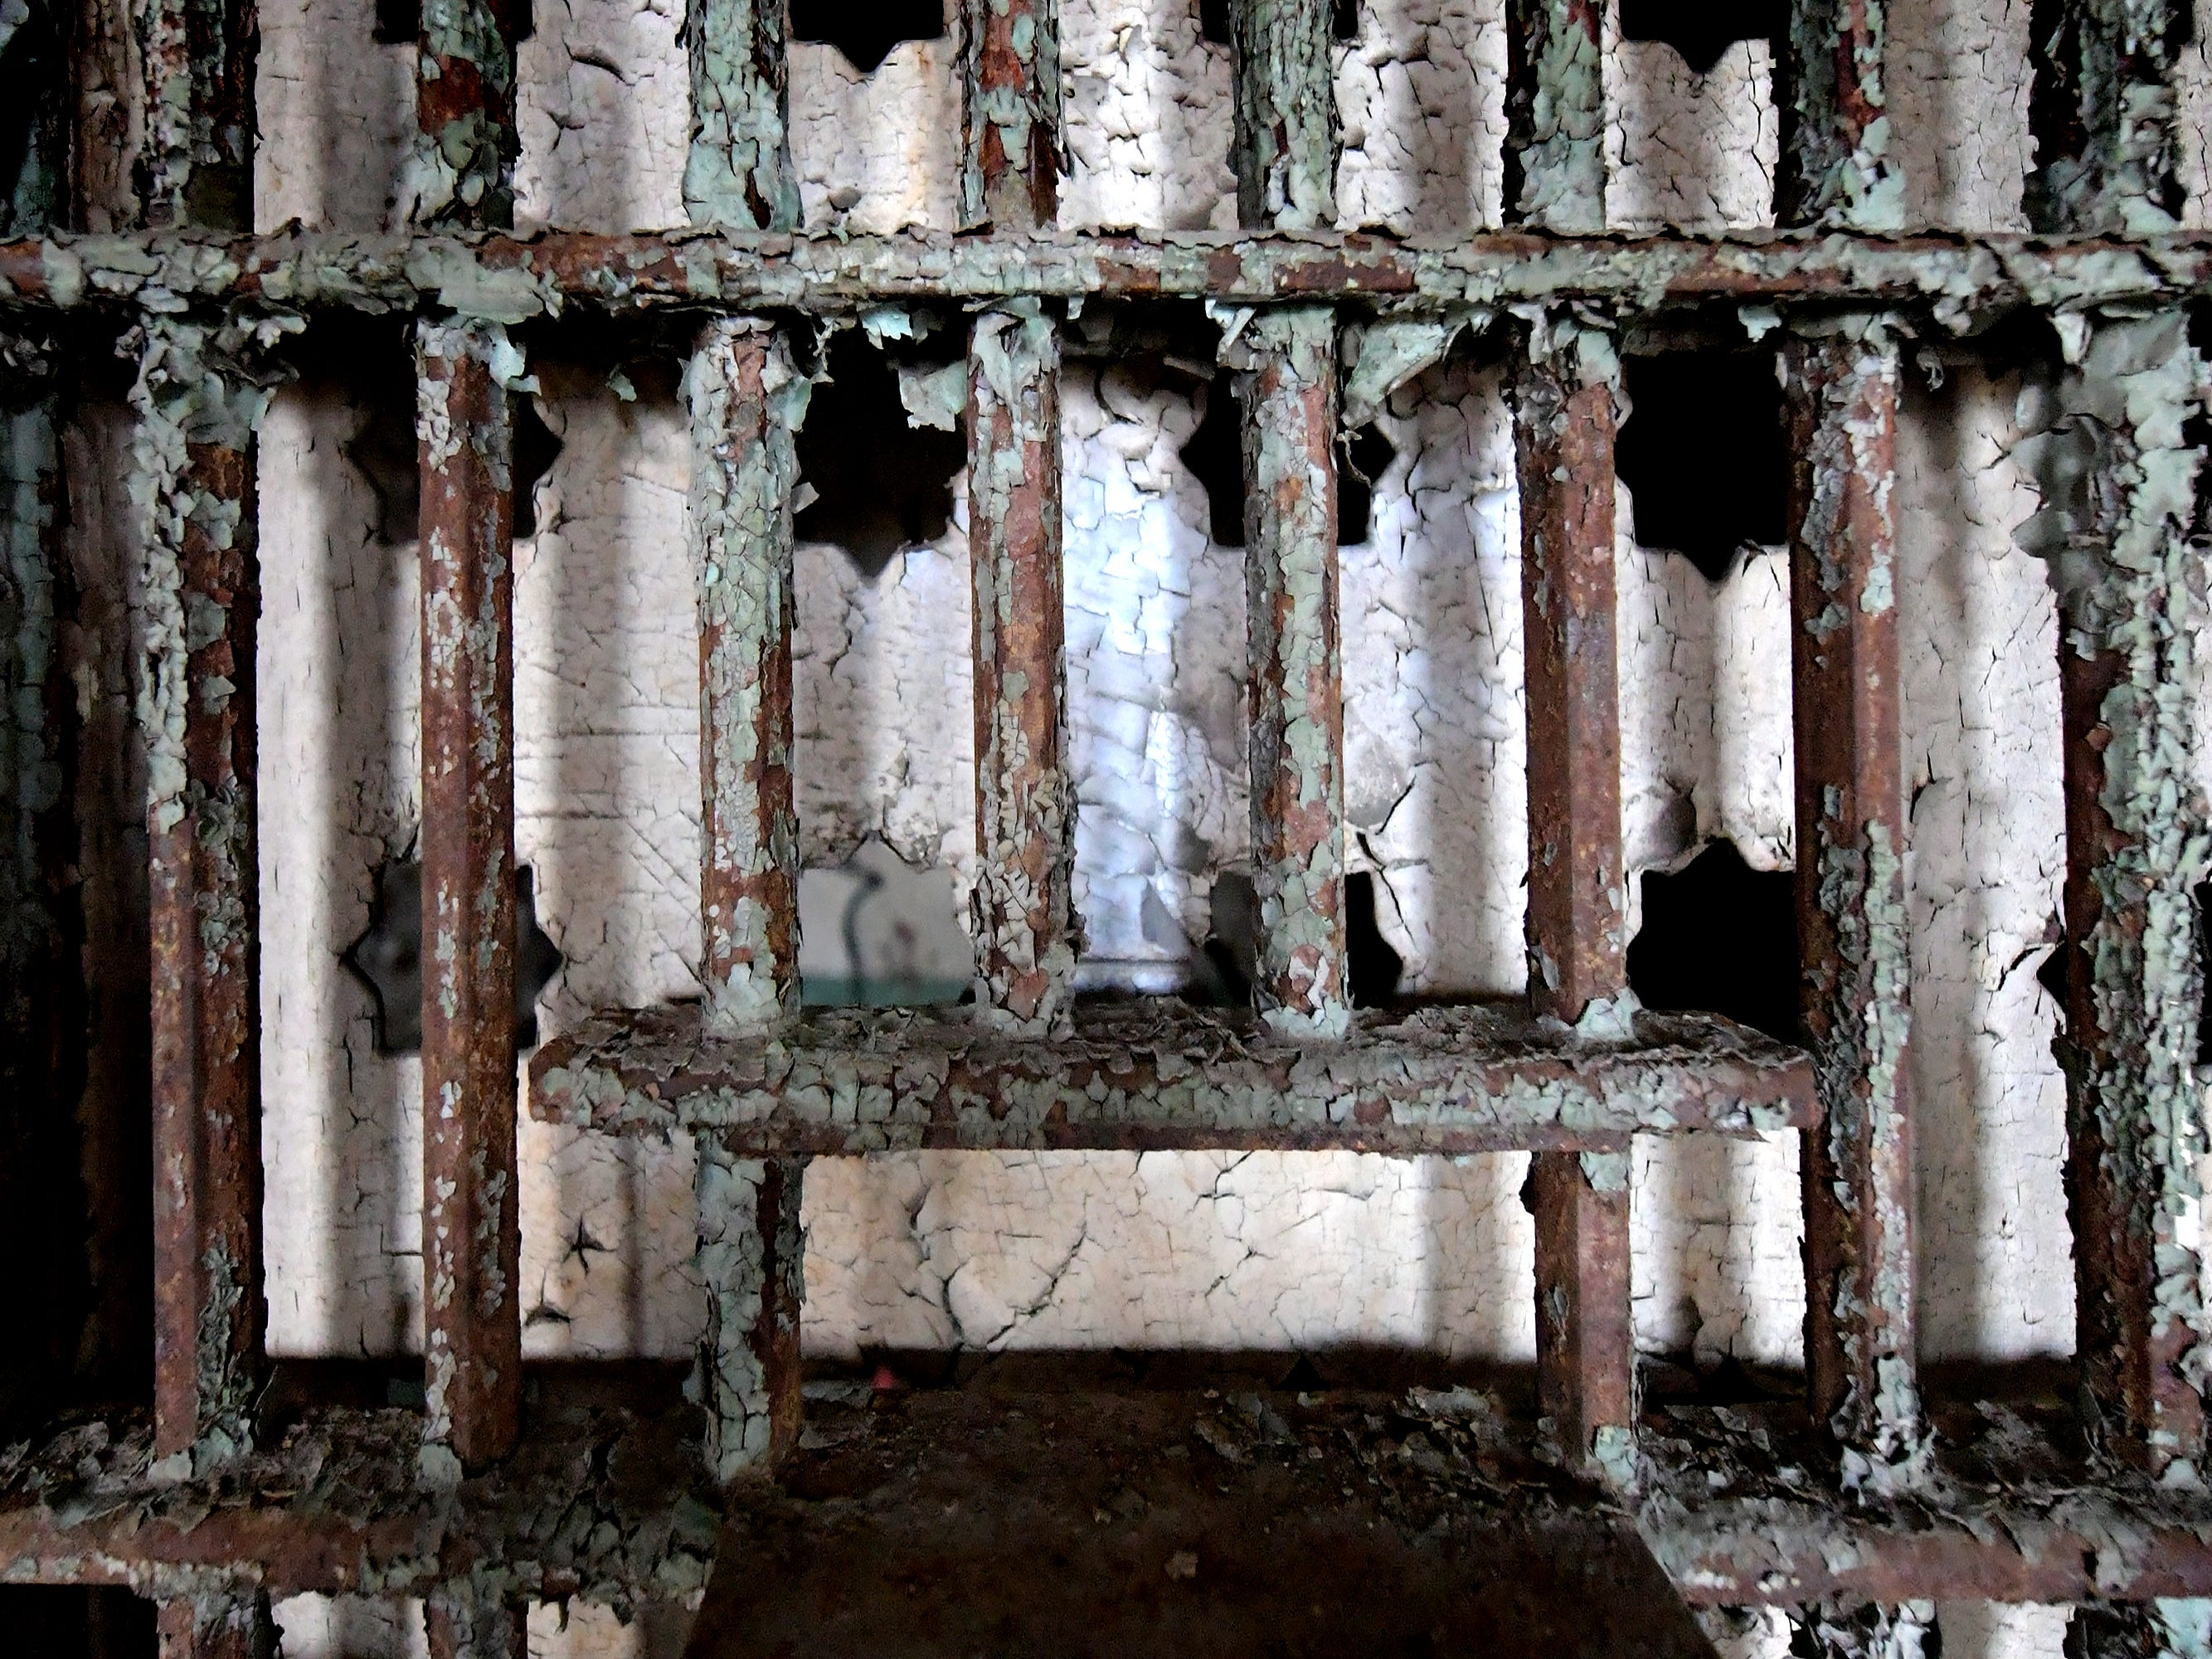 A rusted cell door in the former York County Prison on Chestnut Street in York City Wednesday, Nov. 28, 2018. United Fiber and Data has purchased the building and plans to incorporate the structure into a data center to accompany a 400-mile fiber-optic network it's building between New York and Virginia. Bill Kalina photo